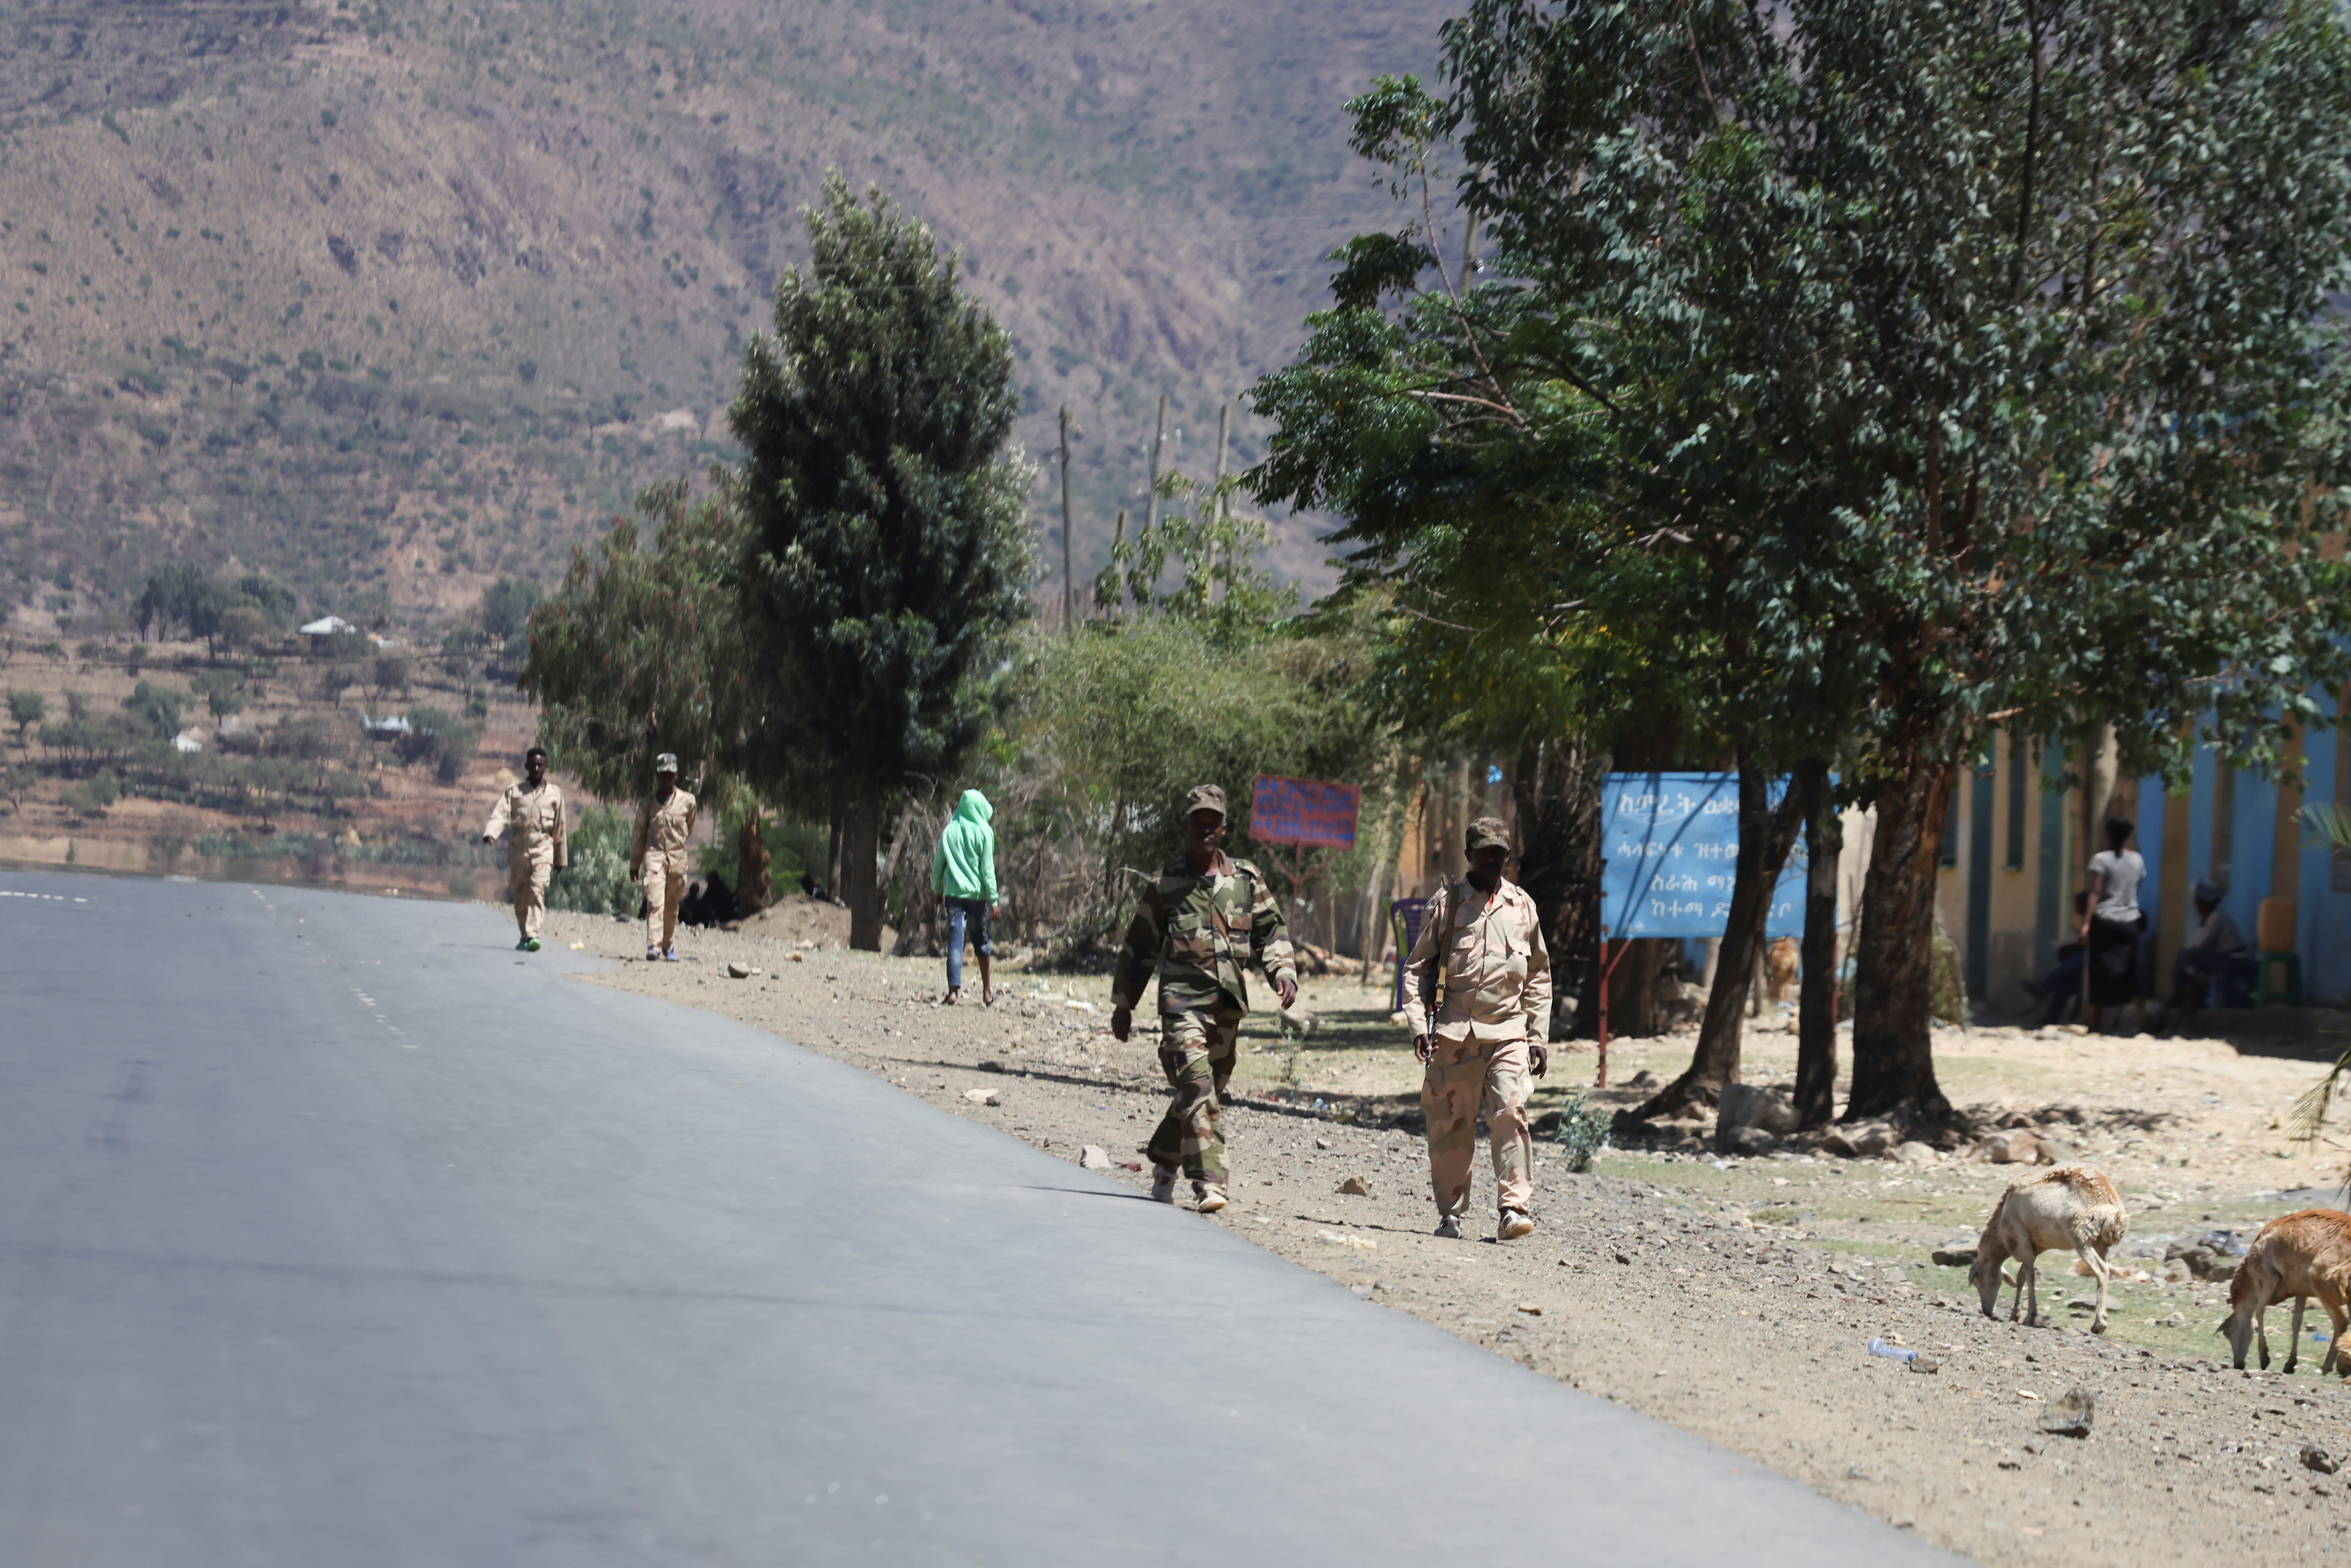 Troops in Eritrean uniforms walk near the town of Adigrat, Ethiopia, March 18, 2021.Picture taken March 18, 2021. REUTERS/Baz Ratner/File Photo